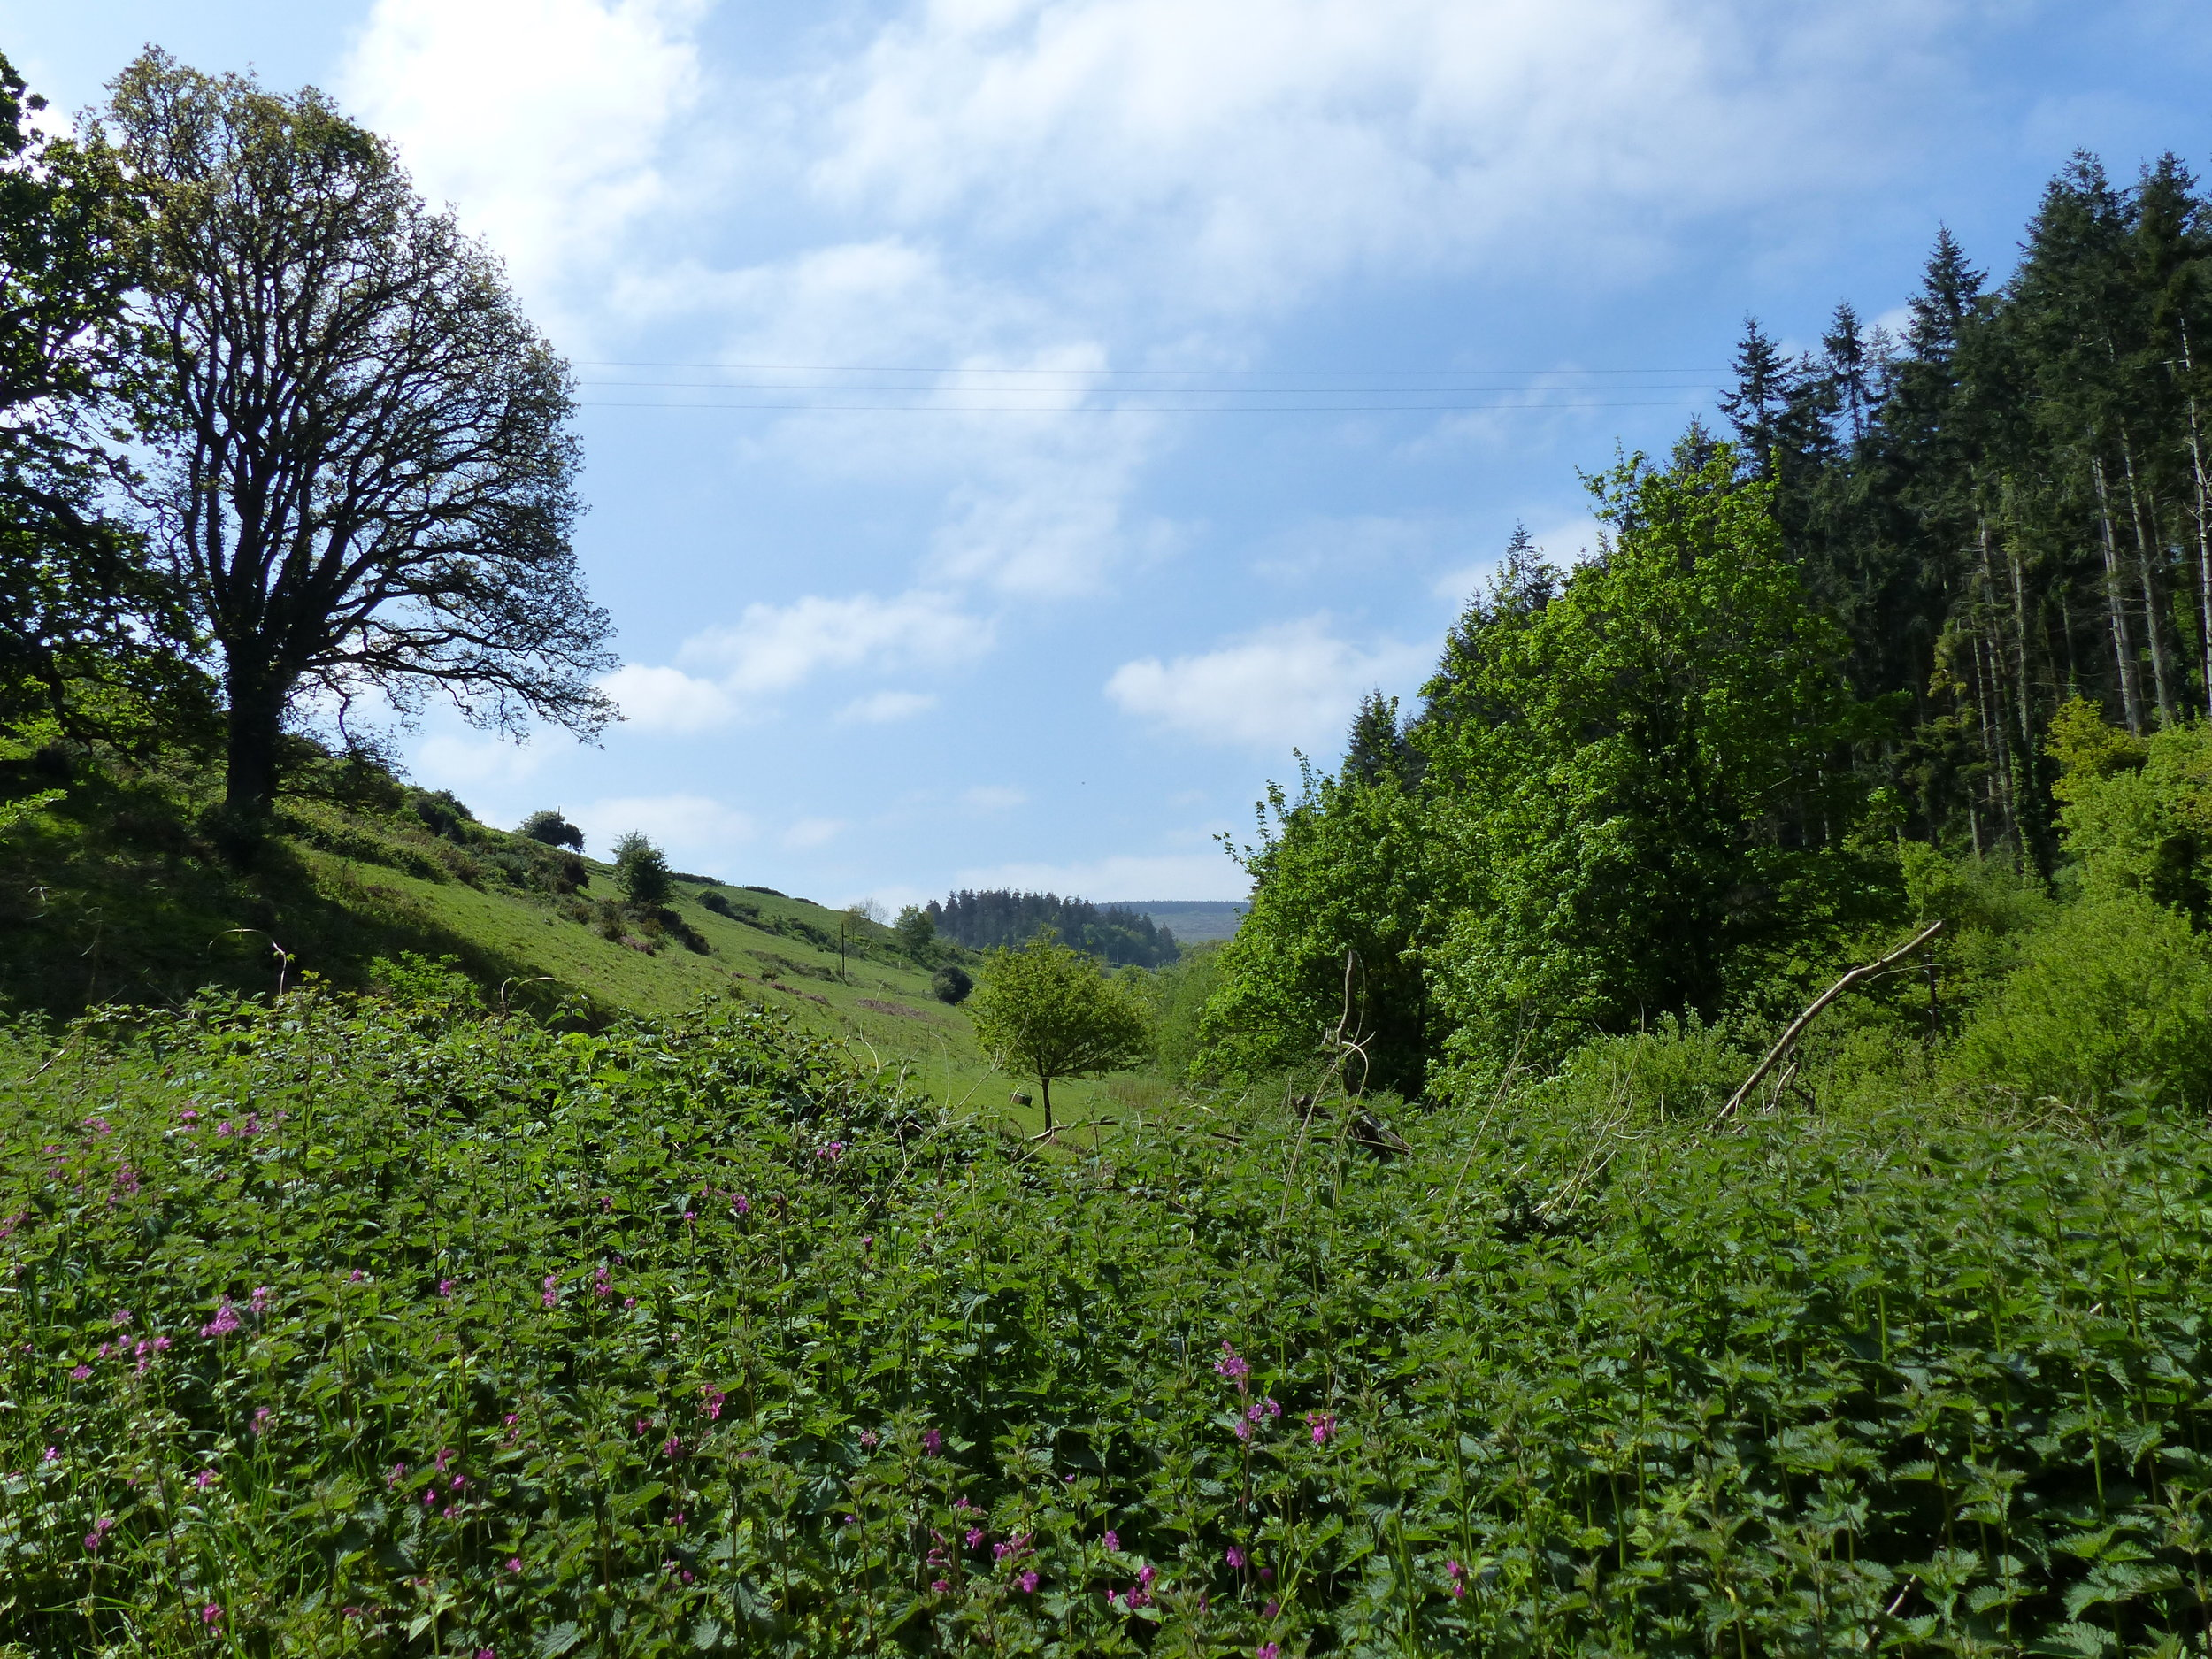 View from the site down the valley towards Black Hill